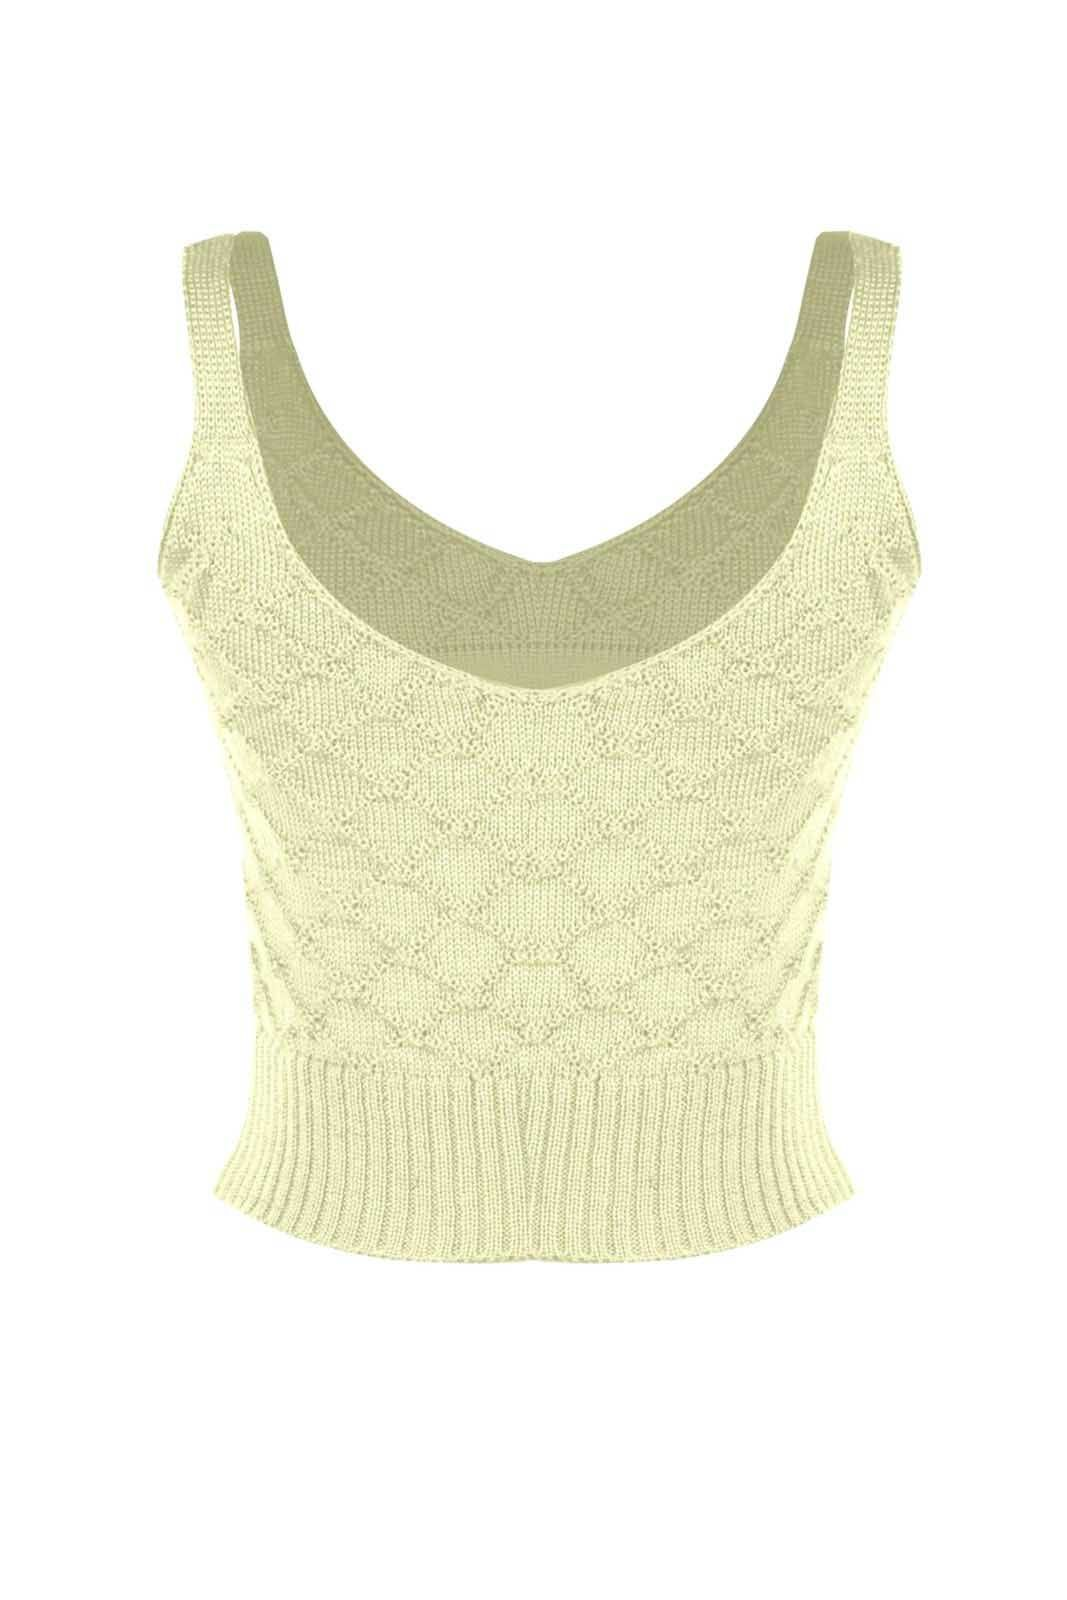 Top Outlet Dri Cropped Tricot Estampado Estampa Plena Creme